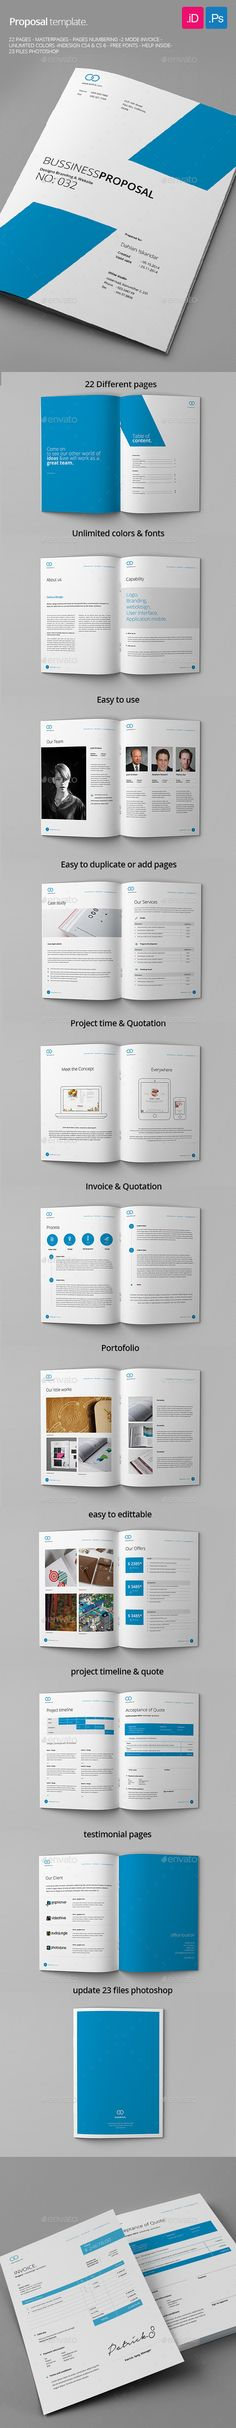 Proposal Proposals, Adobe indesign and Brochure template - bid proposal template word